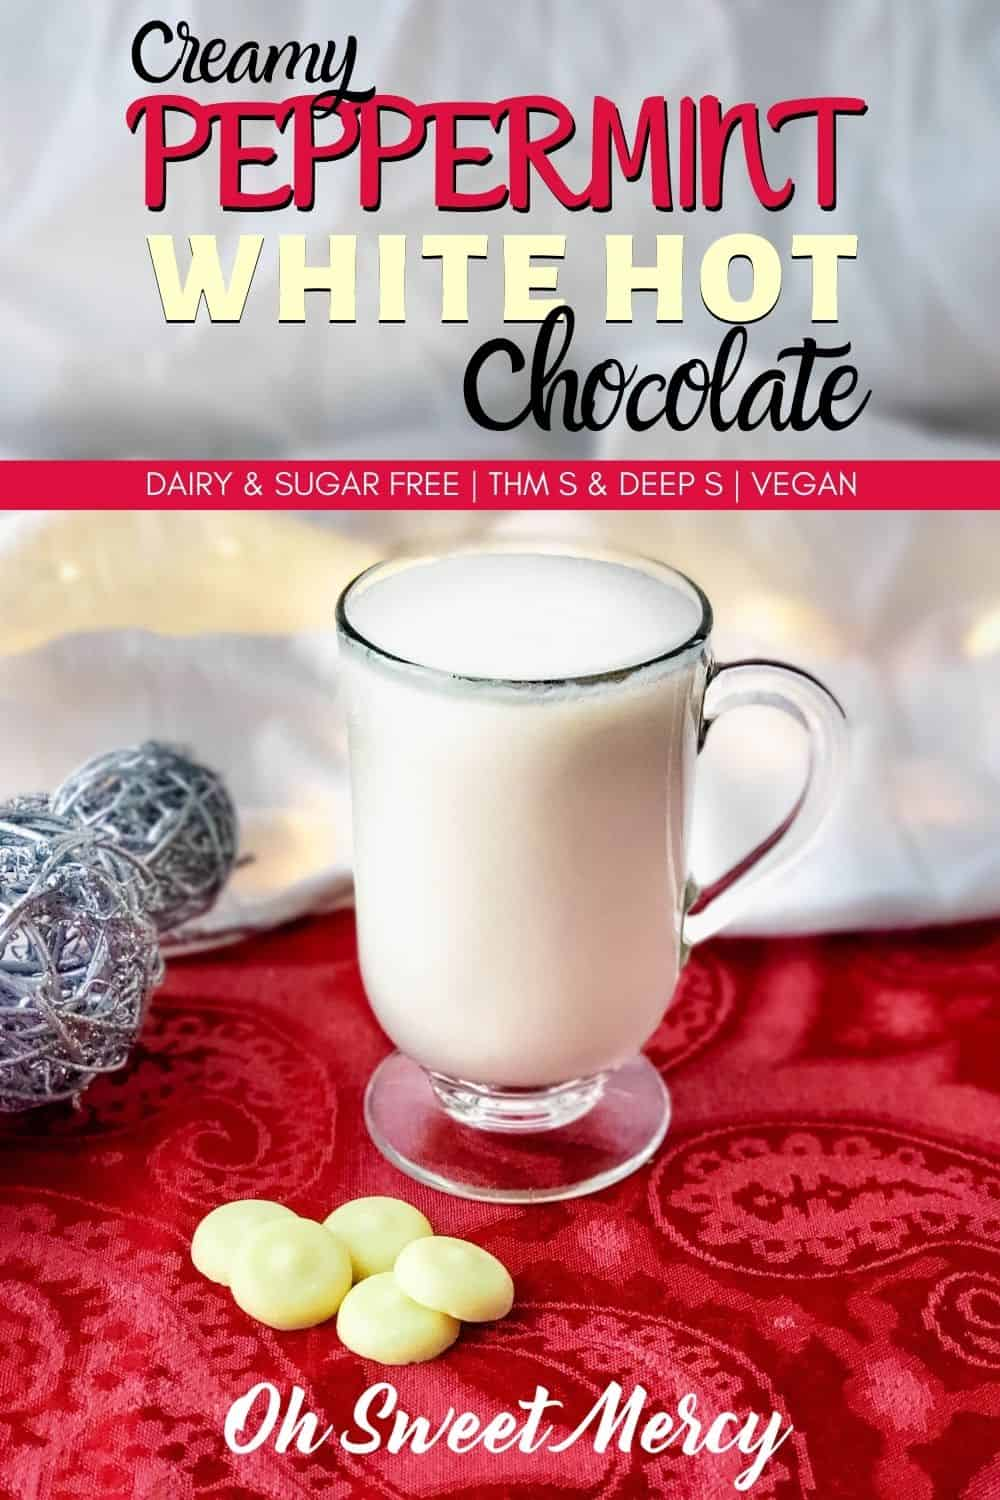 This Creamy Peppermint White Hot Chocolate is dairy and sugar free, but oh so rich and delicious. Perfect for THM Deep S, keto, and vegan peeps, this delicious drink nourishes with healthy fats. #thm #lowcarb #sugarfree #dairyfree #peppermint #whitehotchocolate #cacaobutter #vegan #keto #hotchocolate @ohsweetmercy